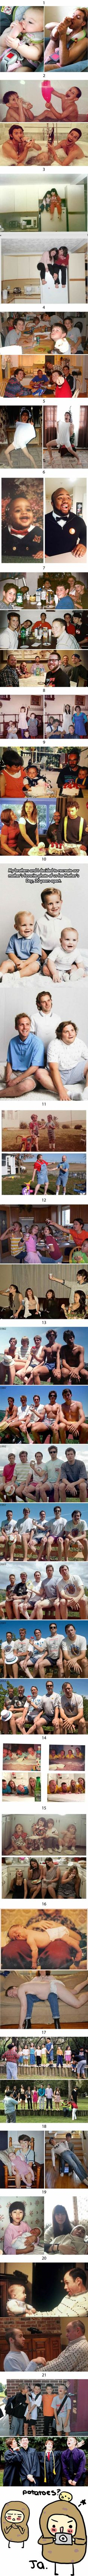 21 'Then & now' images prove that some people never change